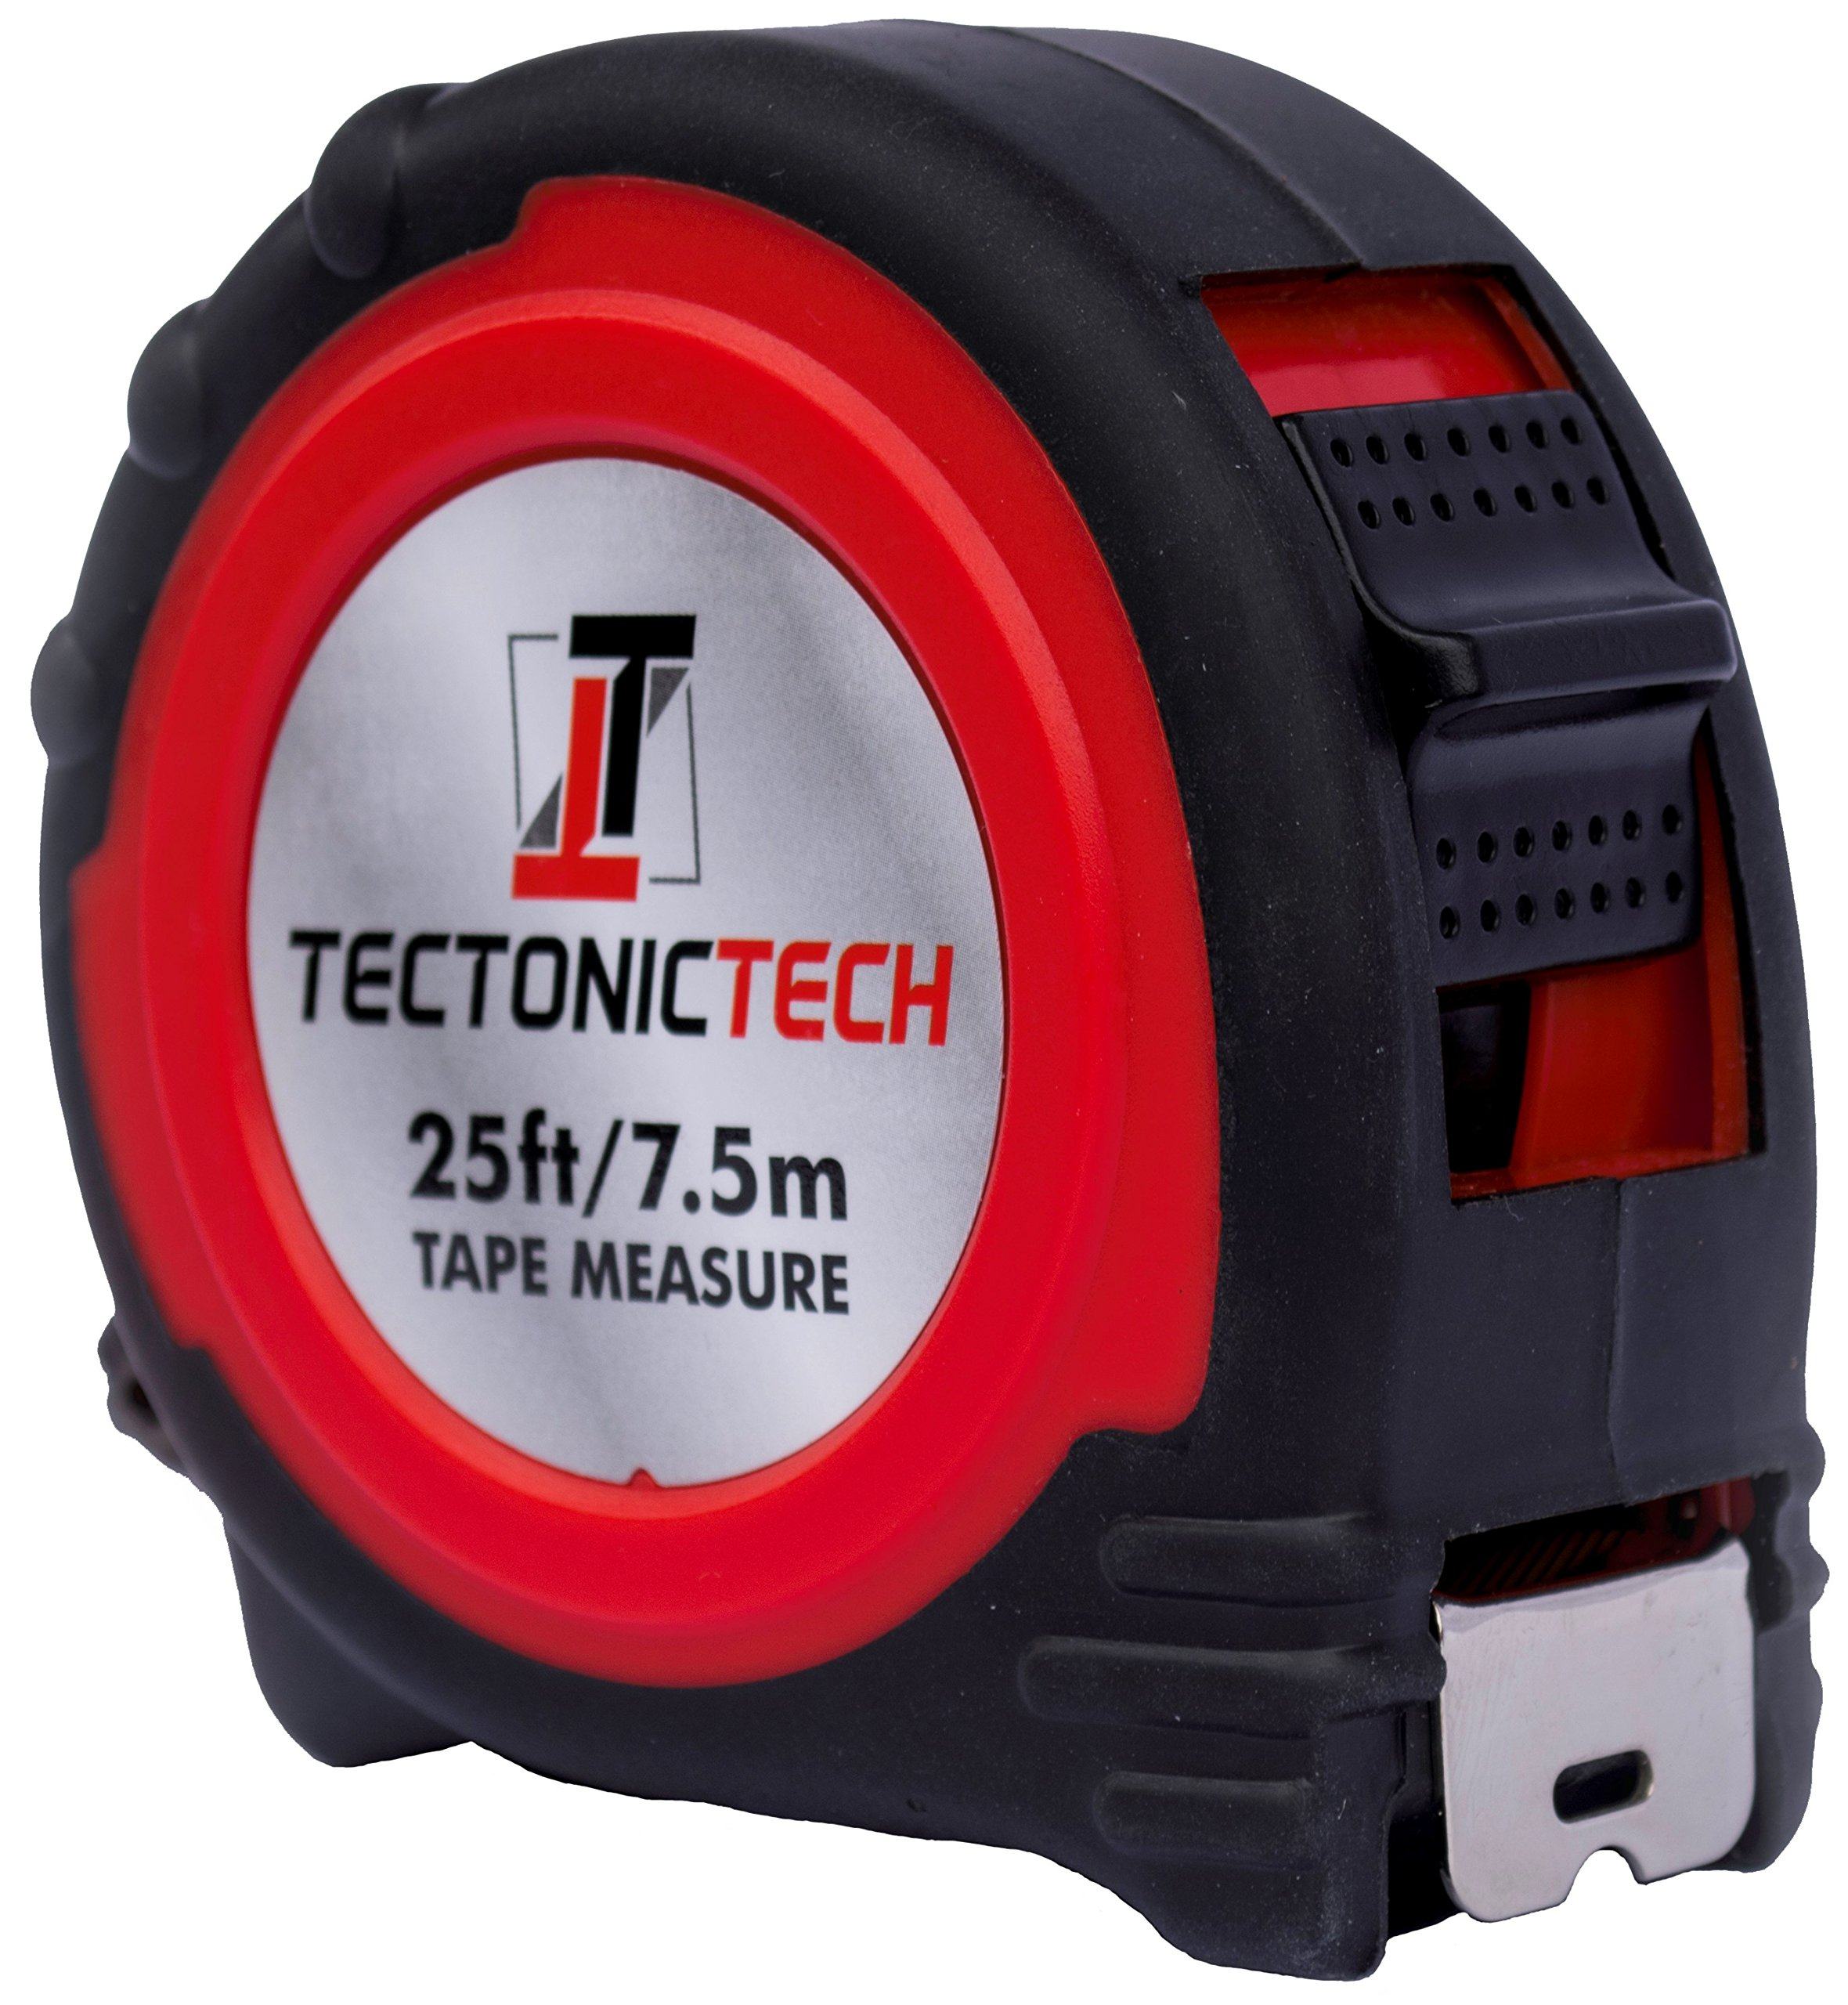 Tectonic Tech Locking Red Tape Measure 25 Foot - 7.5 Meters With Belt Clip and Durable Nylon Coated Inches and Metric by Tectonic Tech